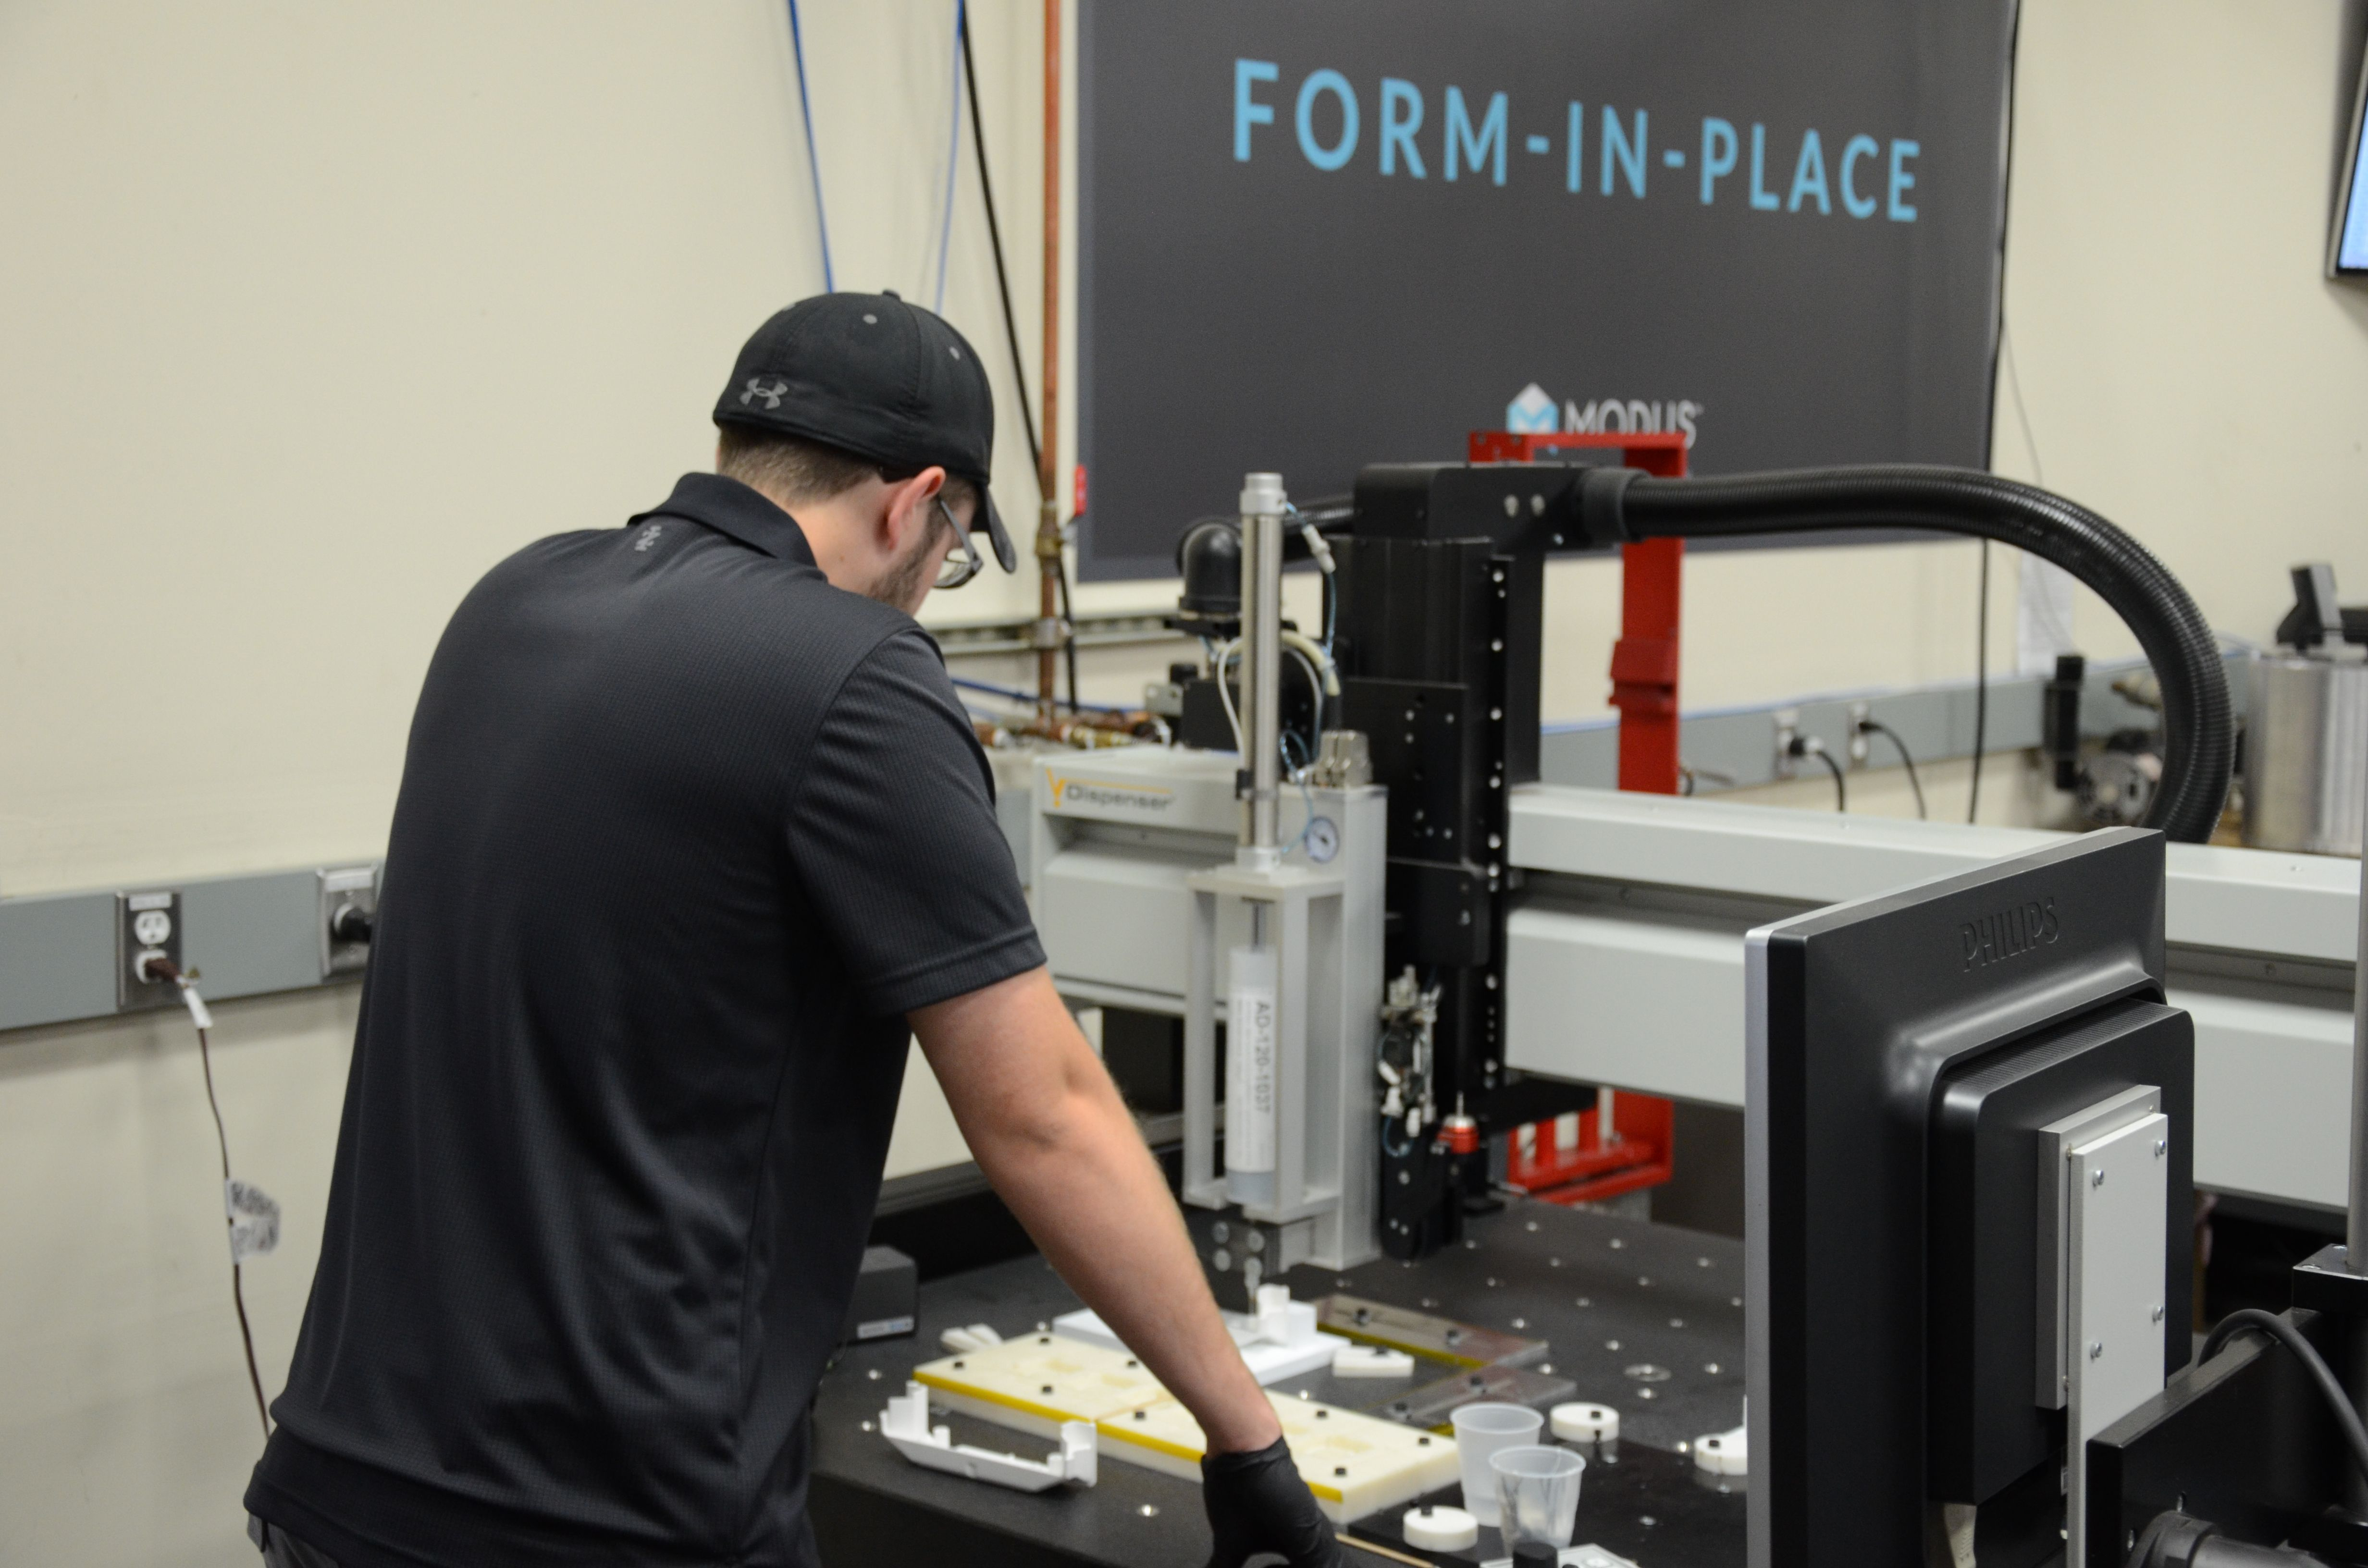 Form-in-Place Gasket Services: What to Look for in a Manufacturing Partner